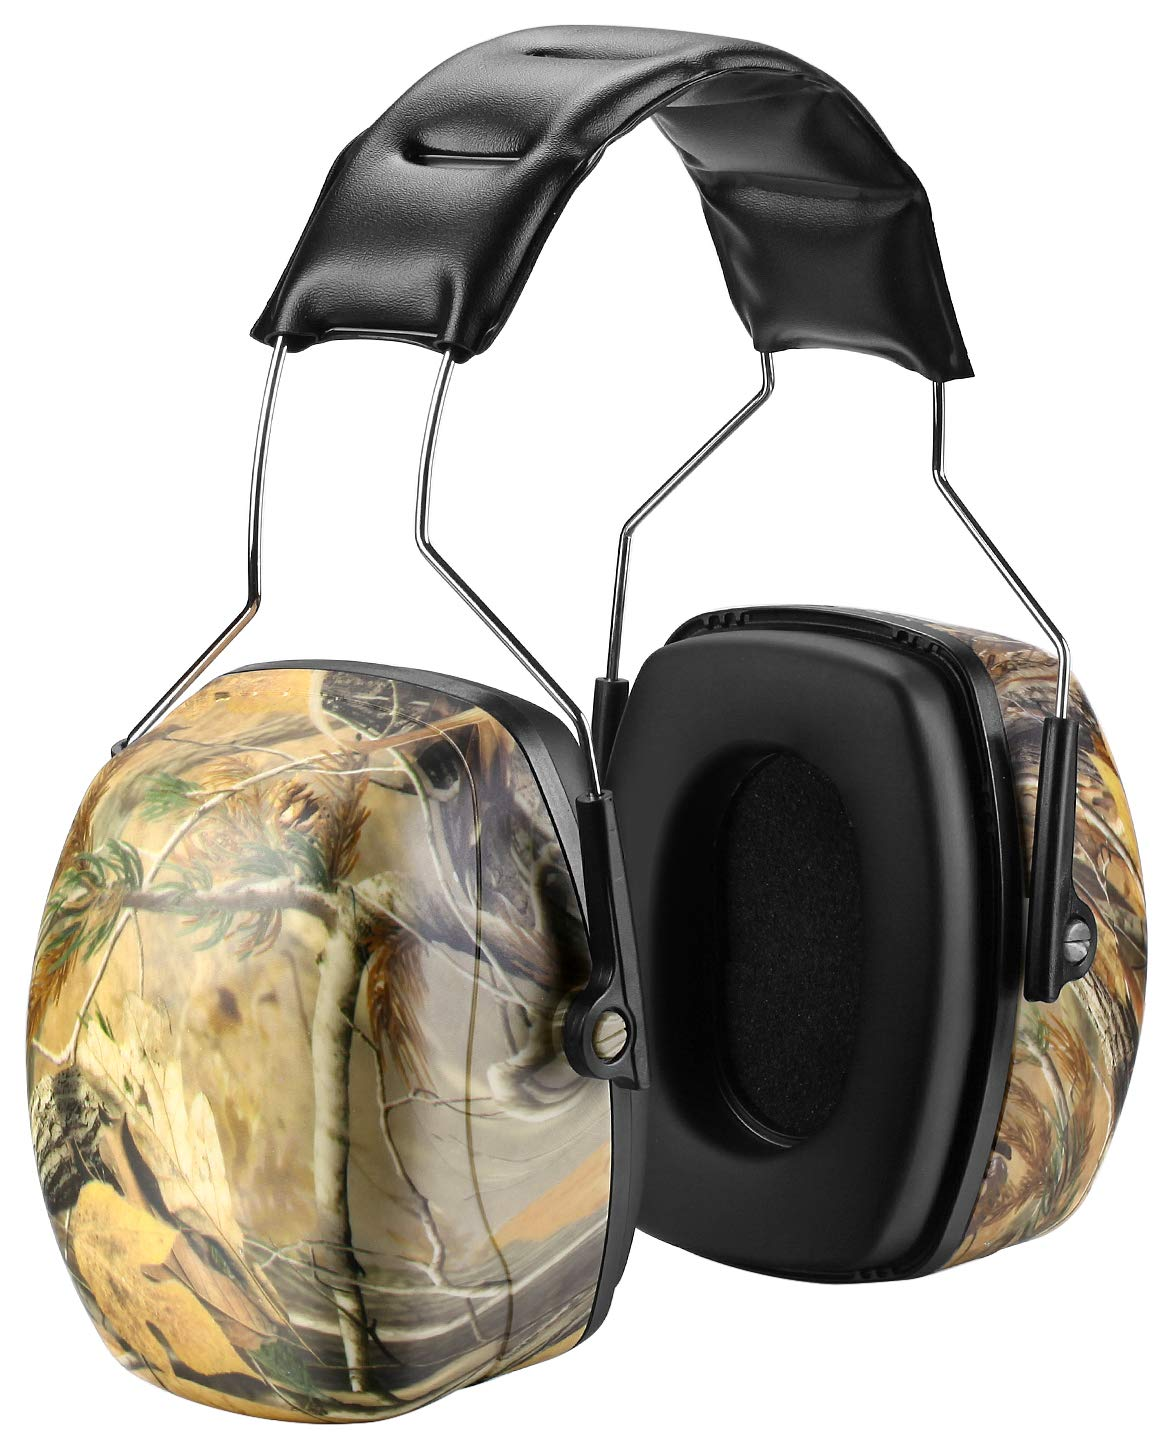 ZOHAN 011 Noise Reduction Ear Protection, High NRR Safety Earmuffs With Camo Pattern (Camo)